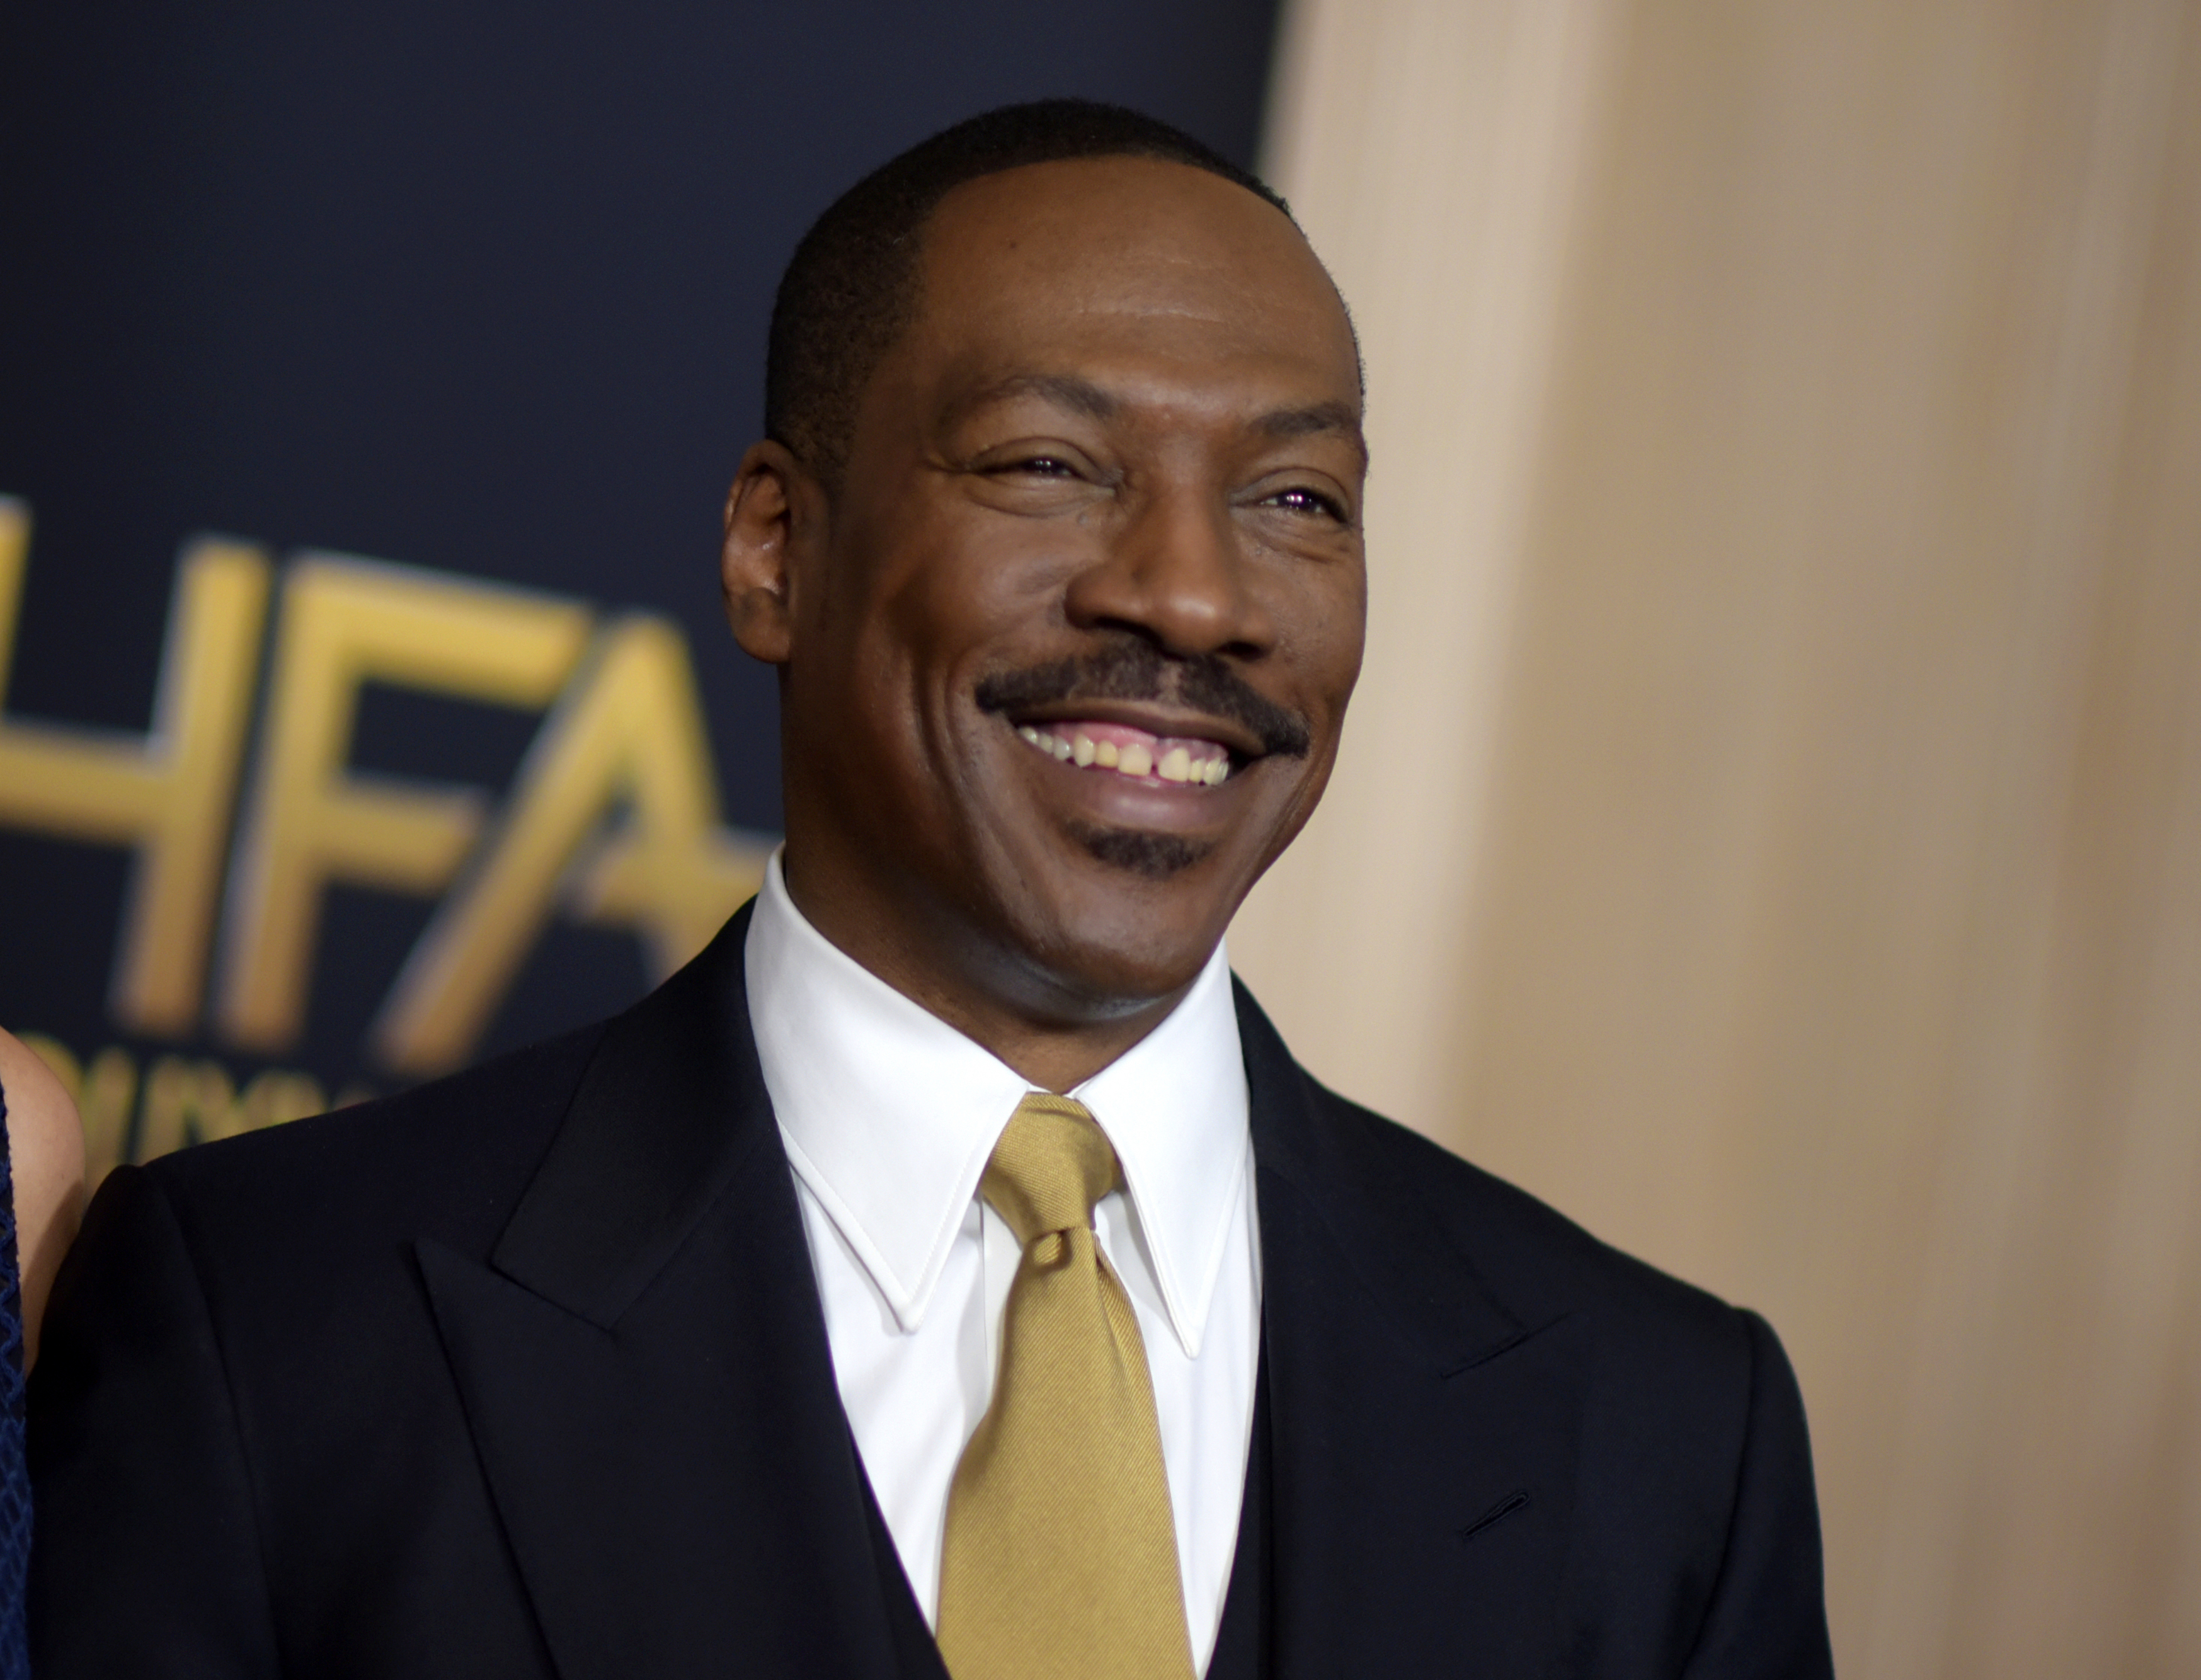 Eddie murphy dating a white girl